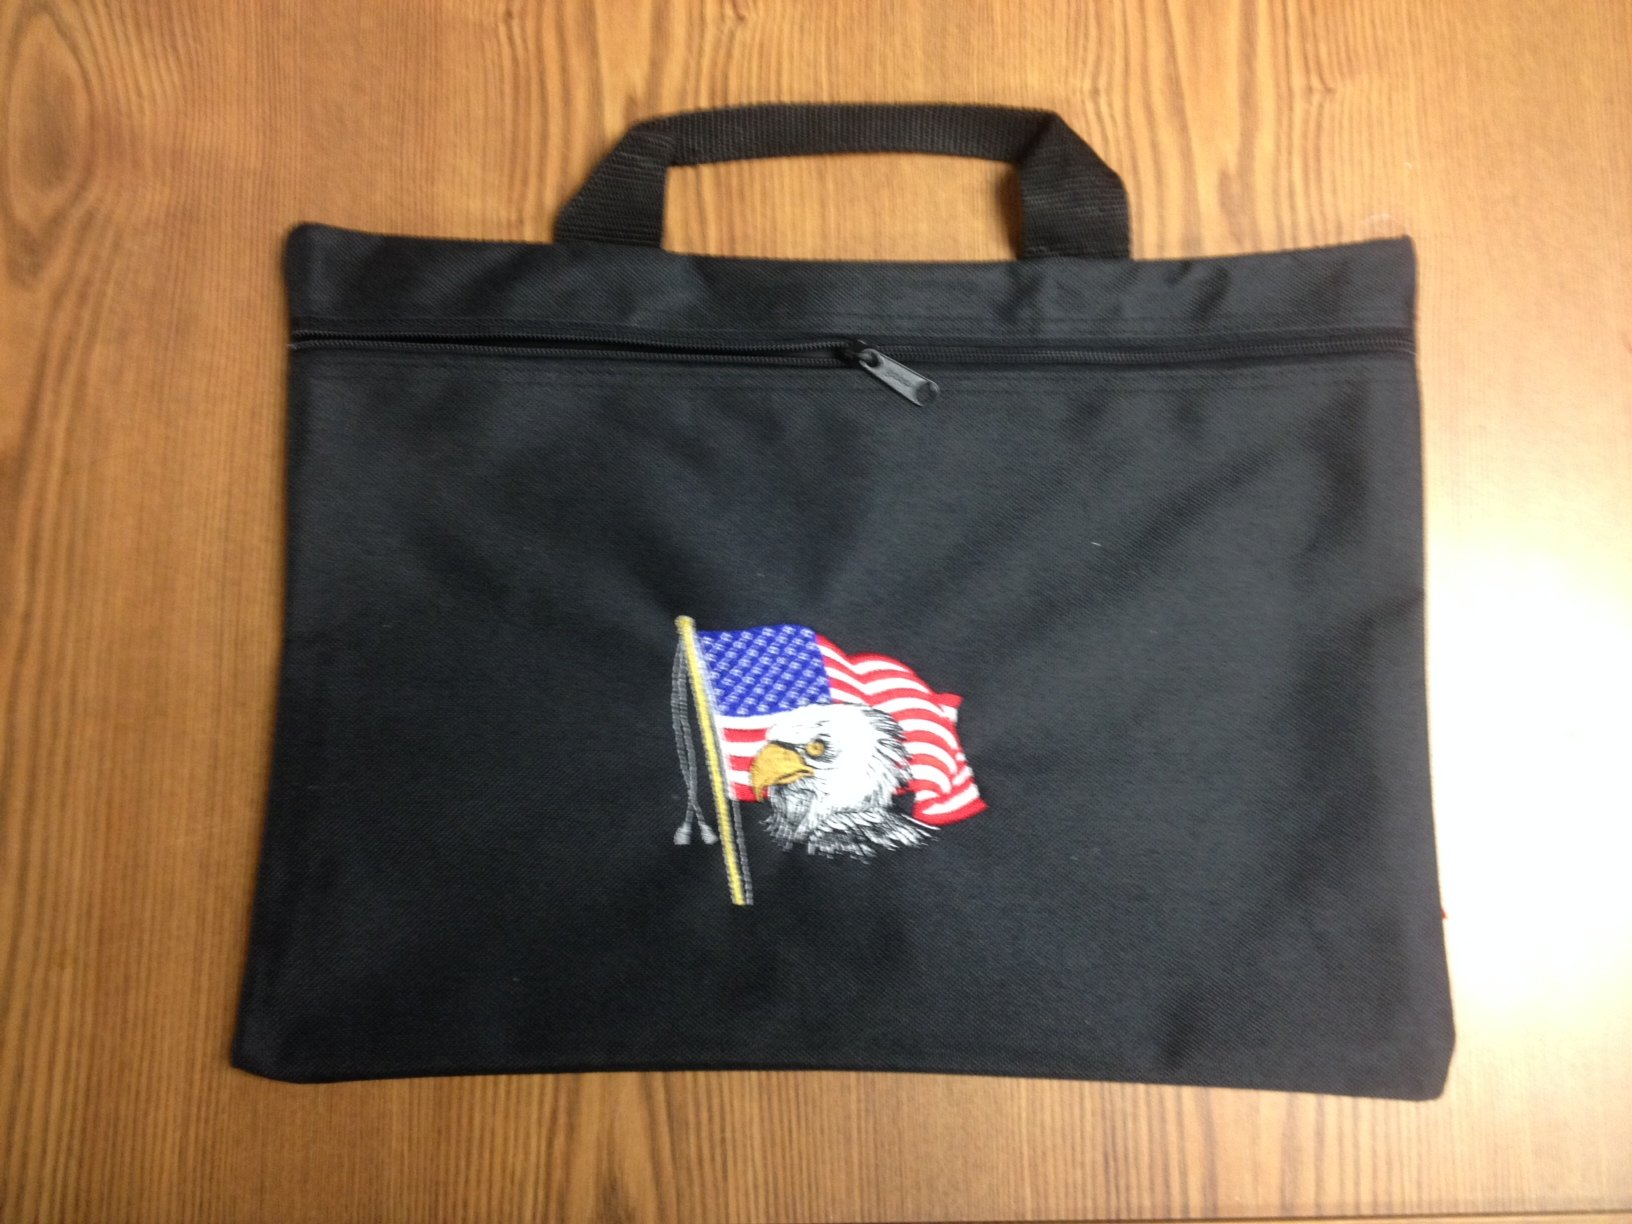 USA - Black nylon zippered portfolio bag